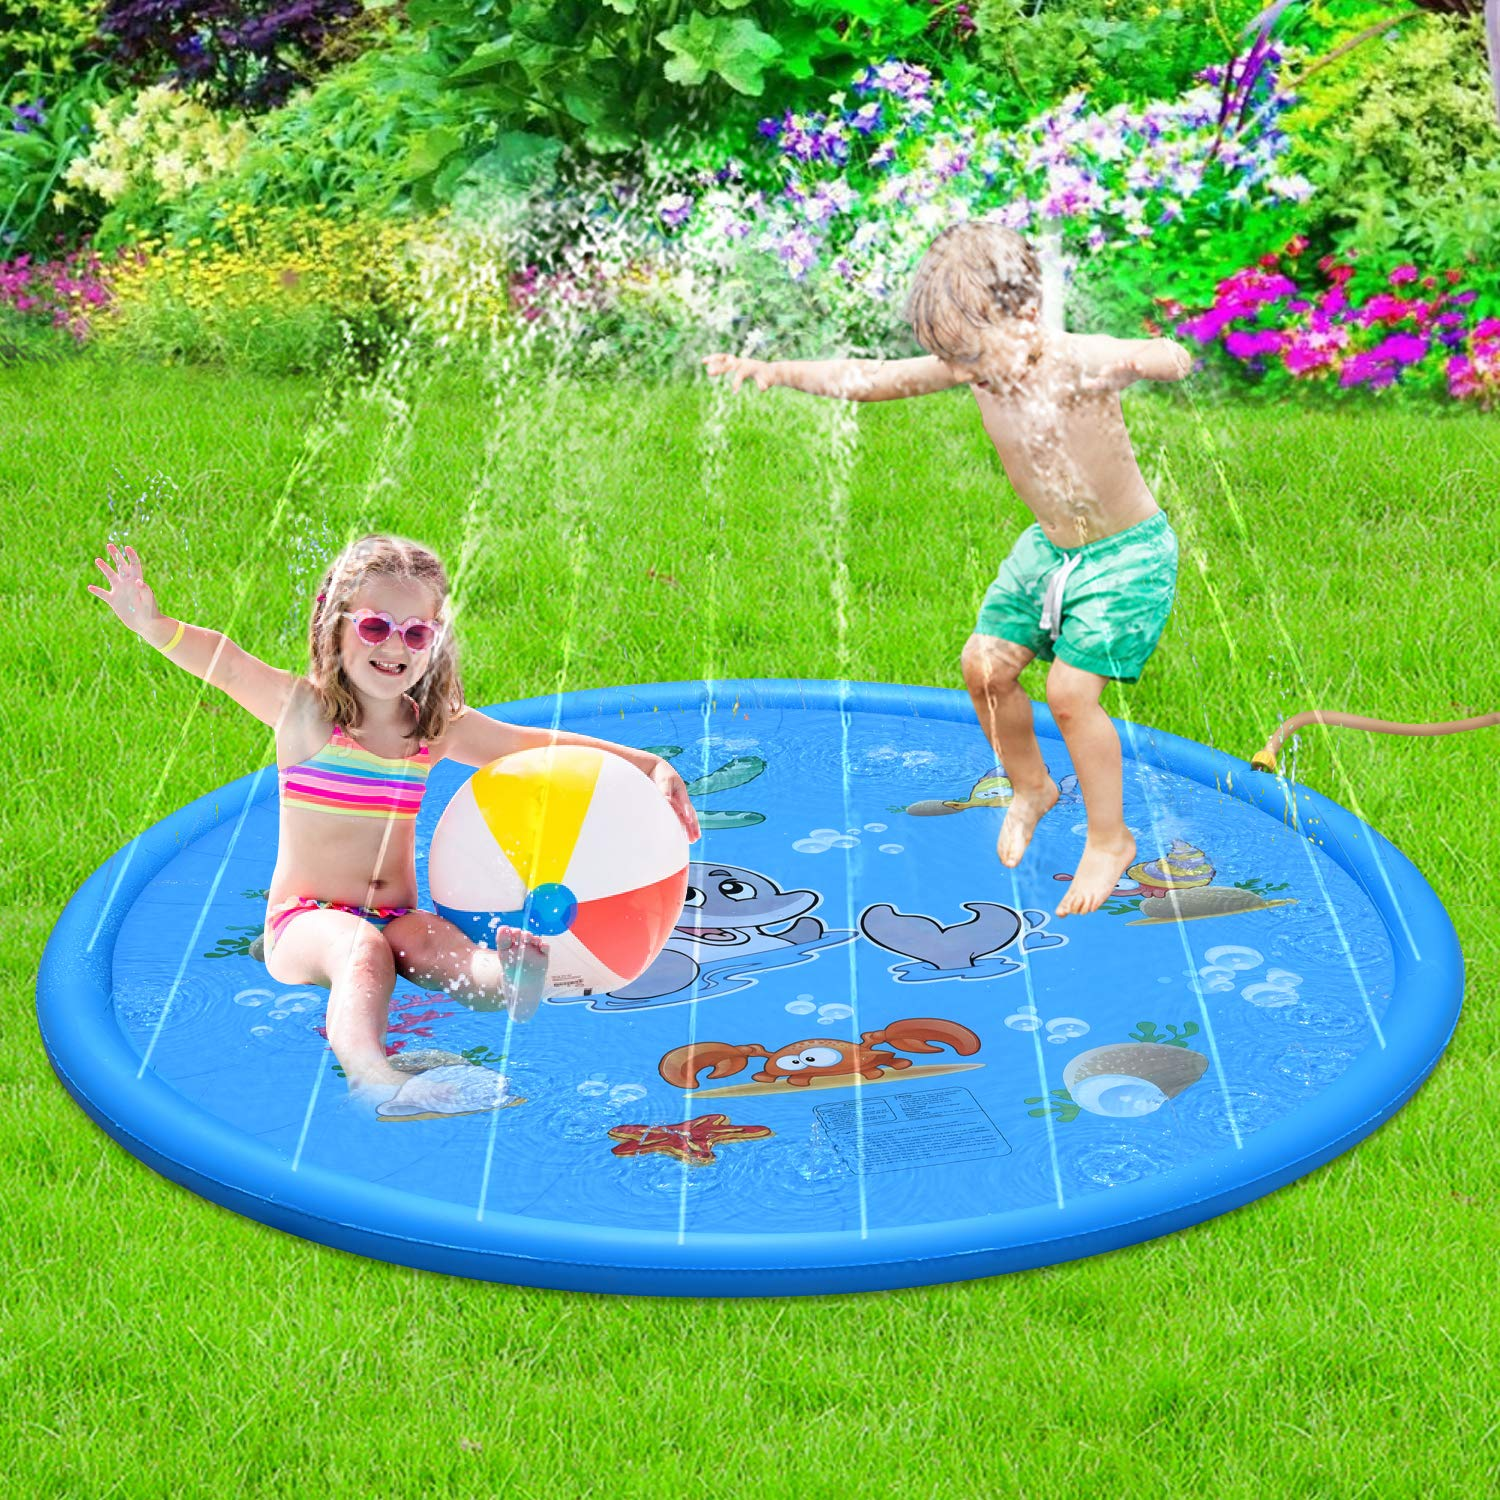 Sprinkle & Splash Play Mat - 68'' Water Sprinkler, Kiddie Outdoor Outside Water Pool Toys for Toddlers Kids Children Infants Boys and Girls - Perfect Inflatable Outdoor Summer Water Toys Sprinkler pad by Forliver